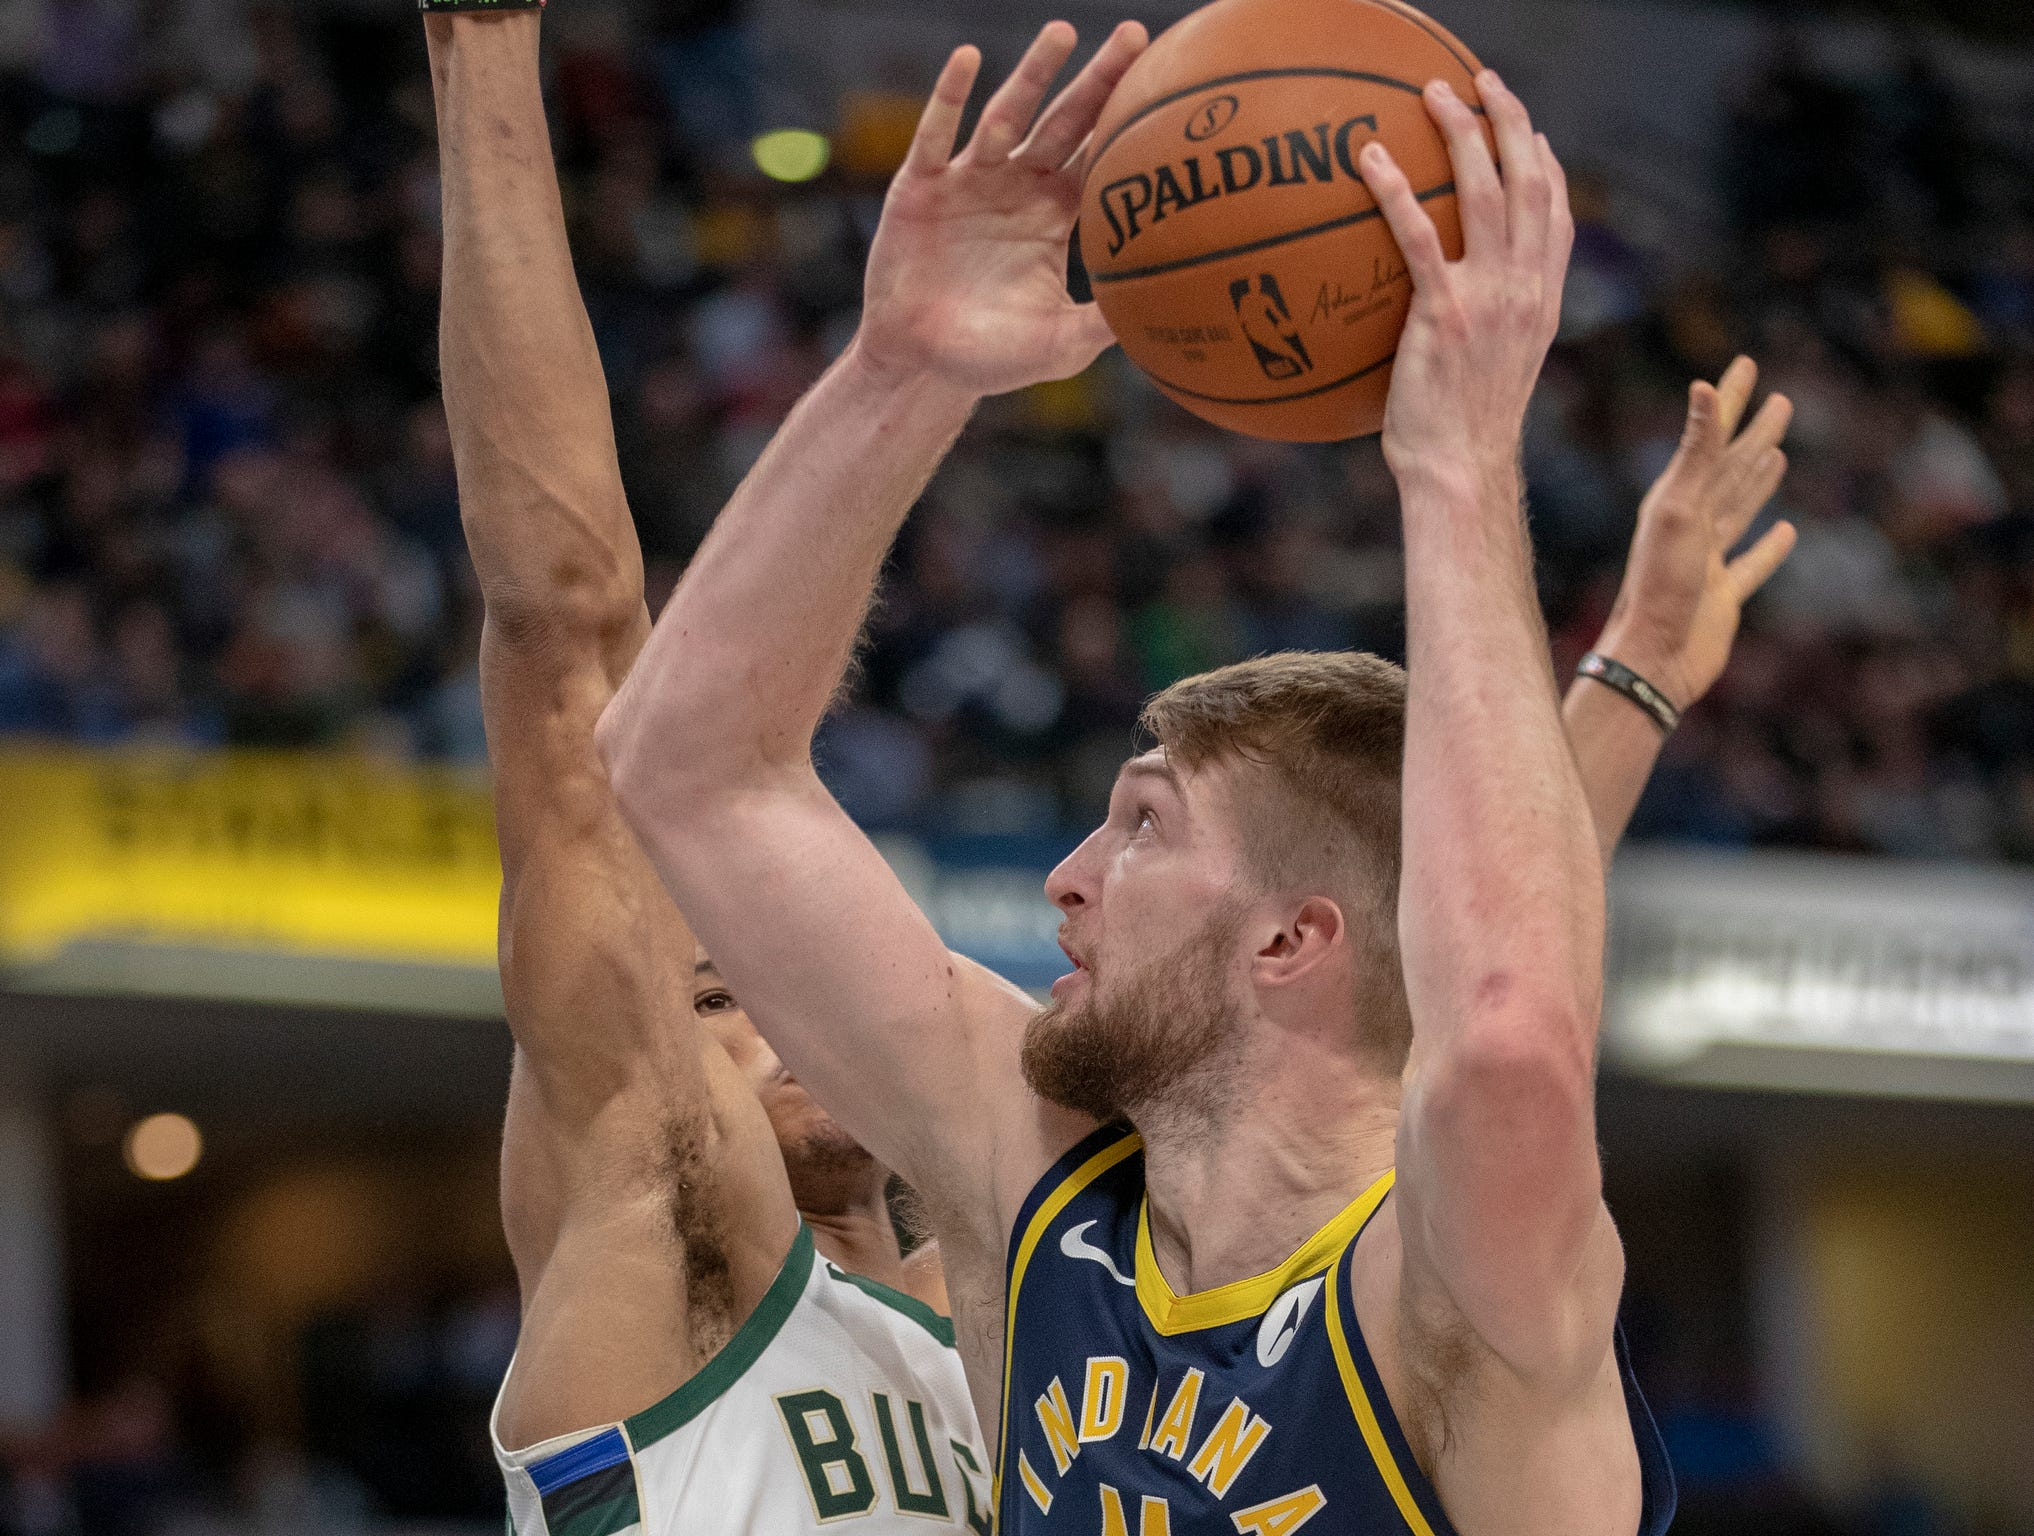 Domantas Sabonis of the Indiana Pacers works against Giannis Antetokounmpo of the Milwaukee Bucks, Bankers Life Fieldhouse, Indianapolis, Wednesday, Feb. 13, 2019. Milwaukee won 106-97.